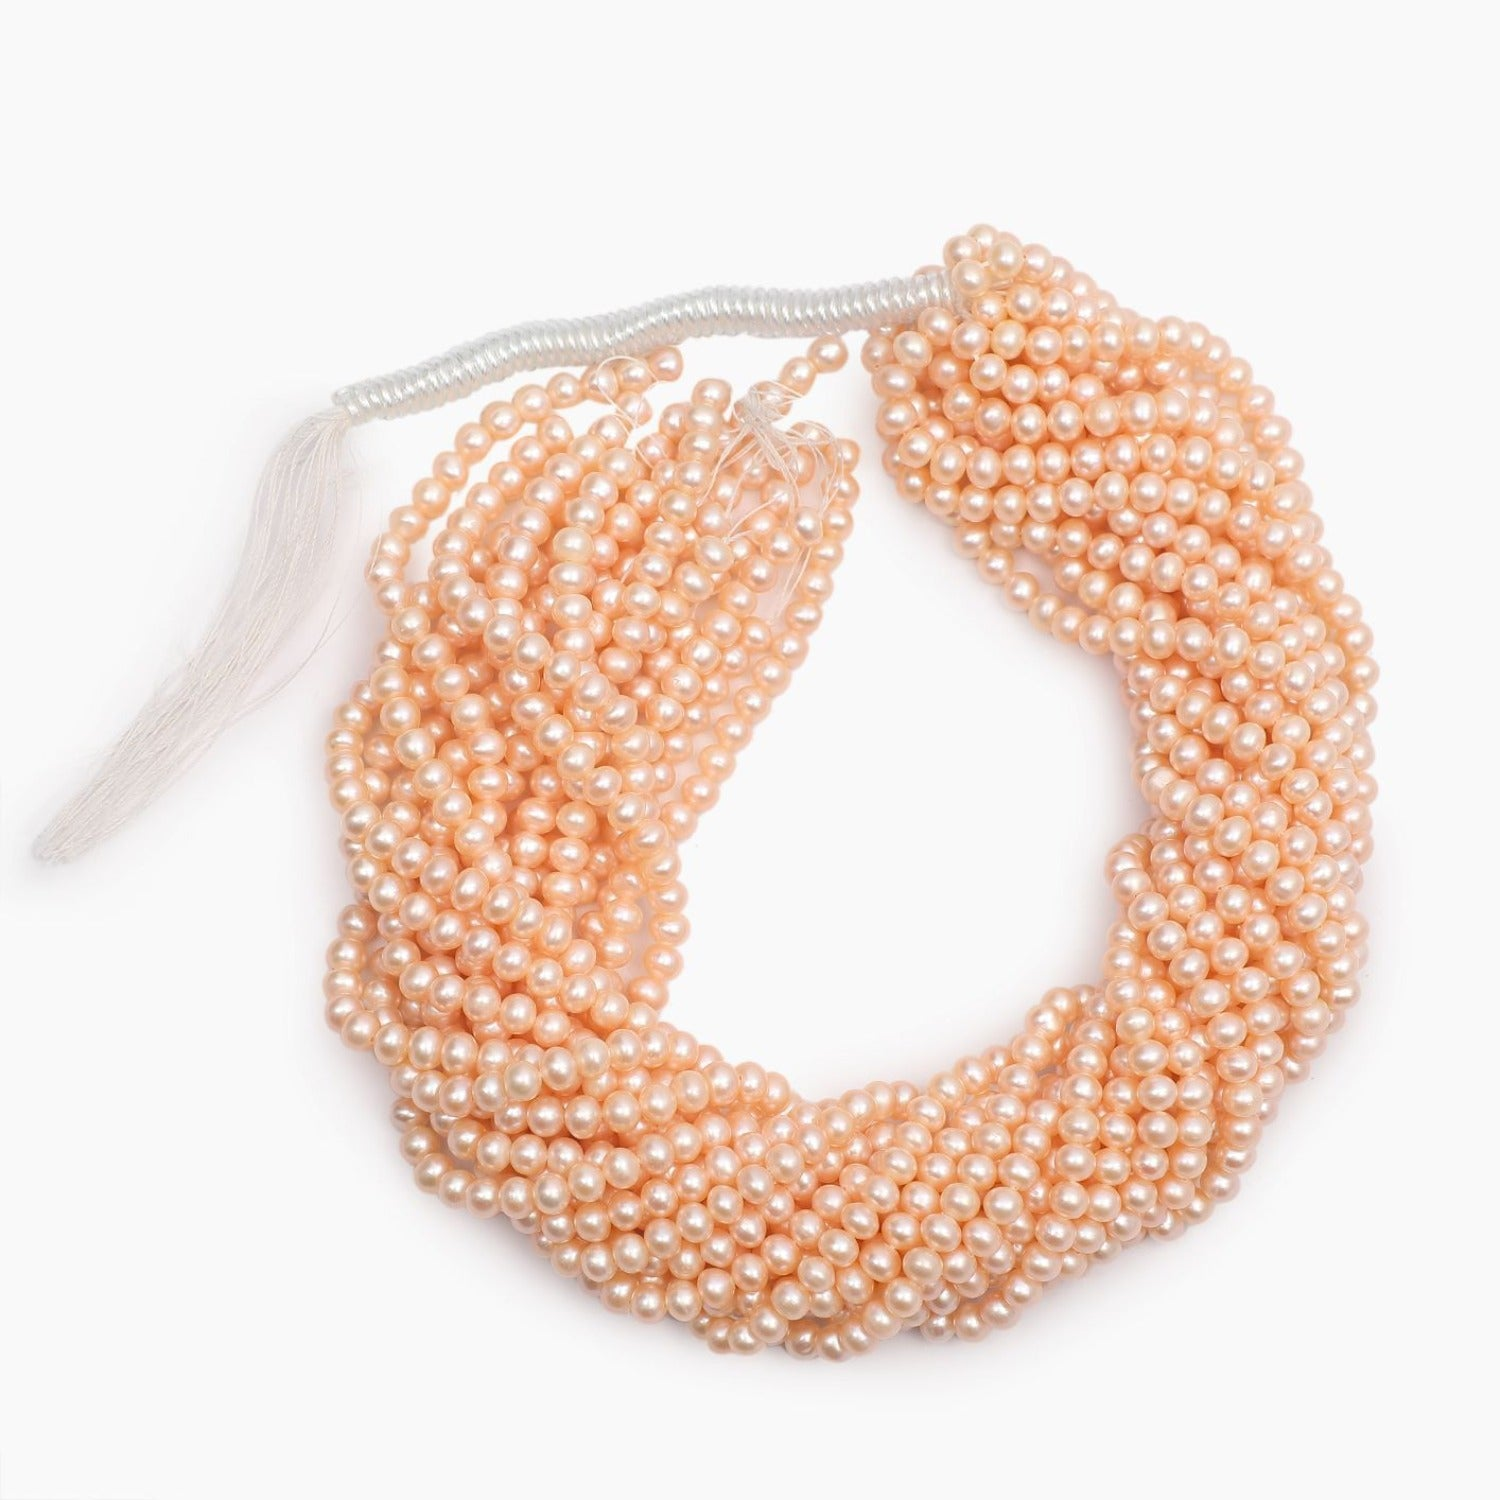 Freshwater Peach Round Pearls 6mm- Sold Per Strand